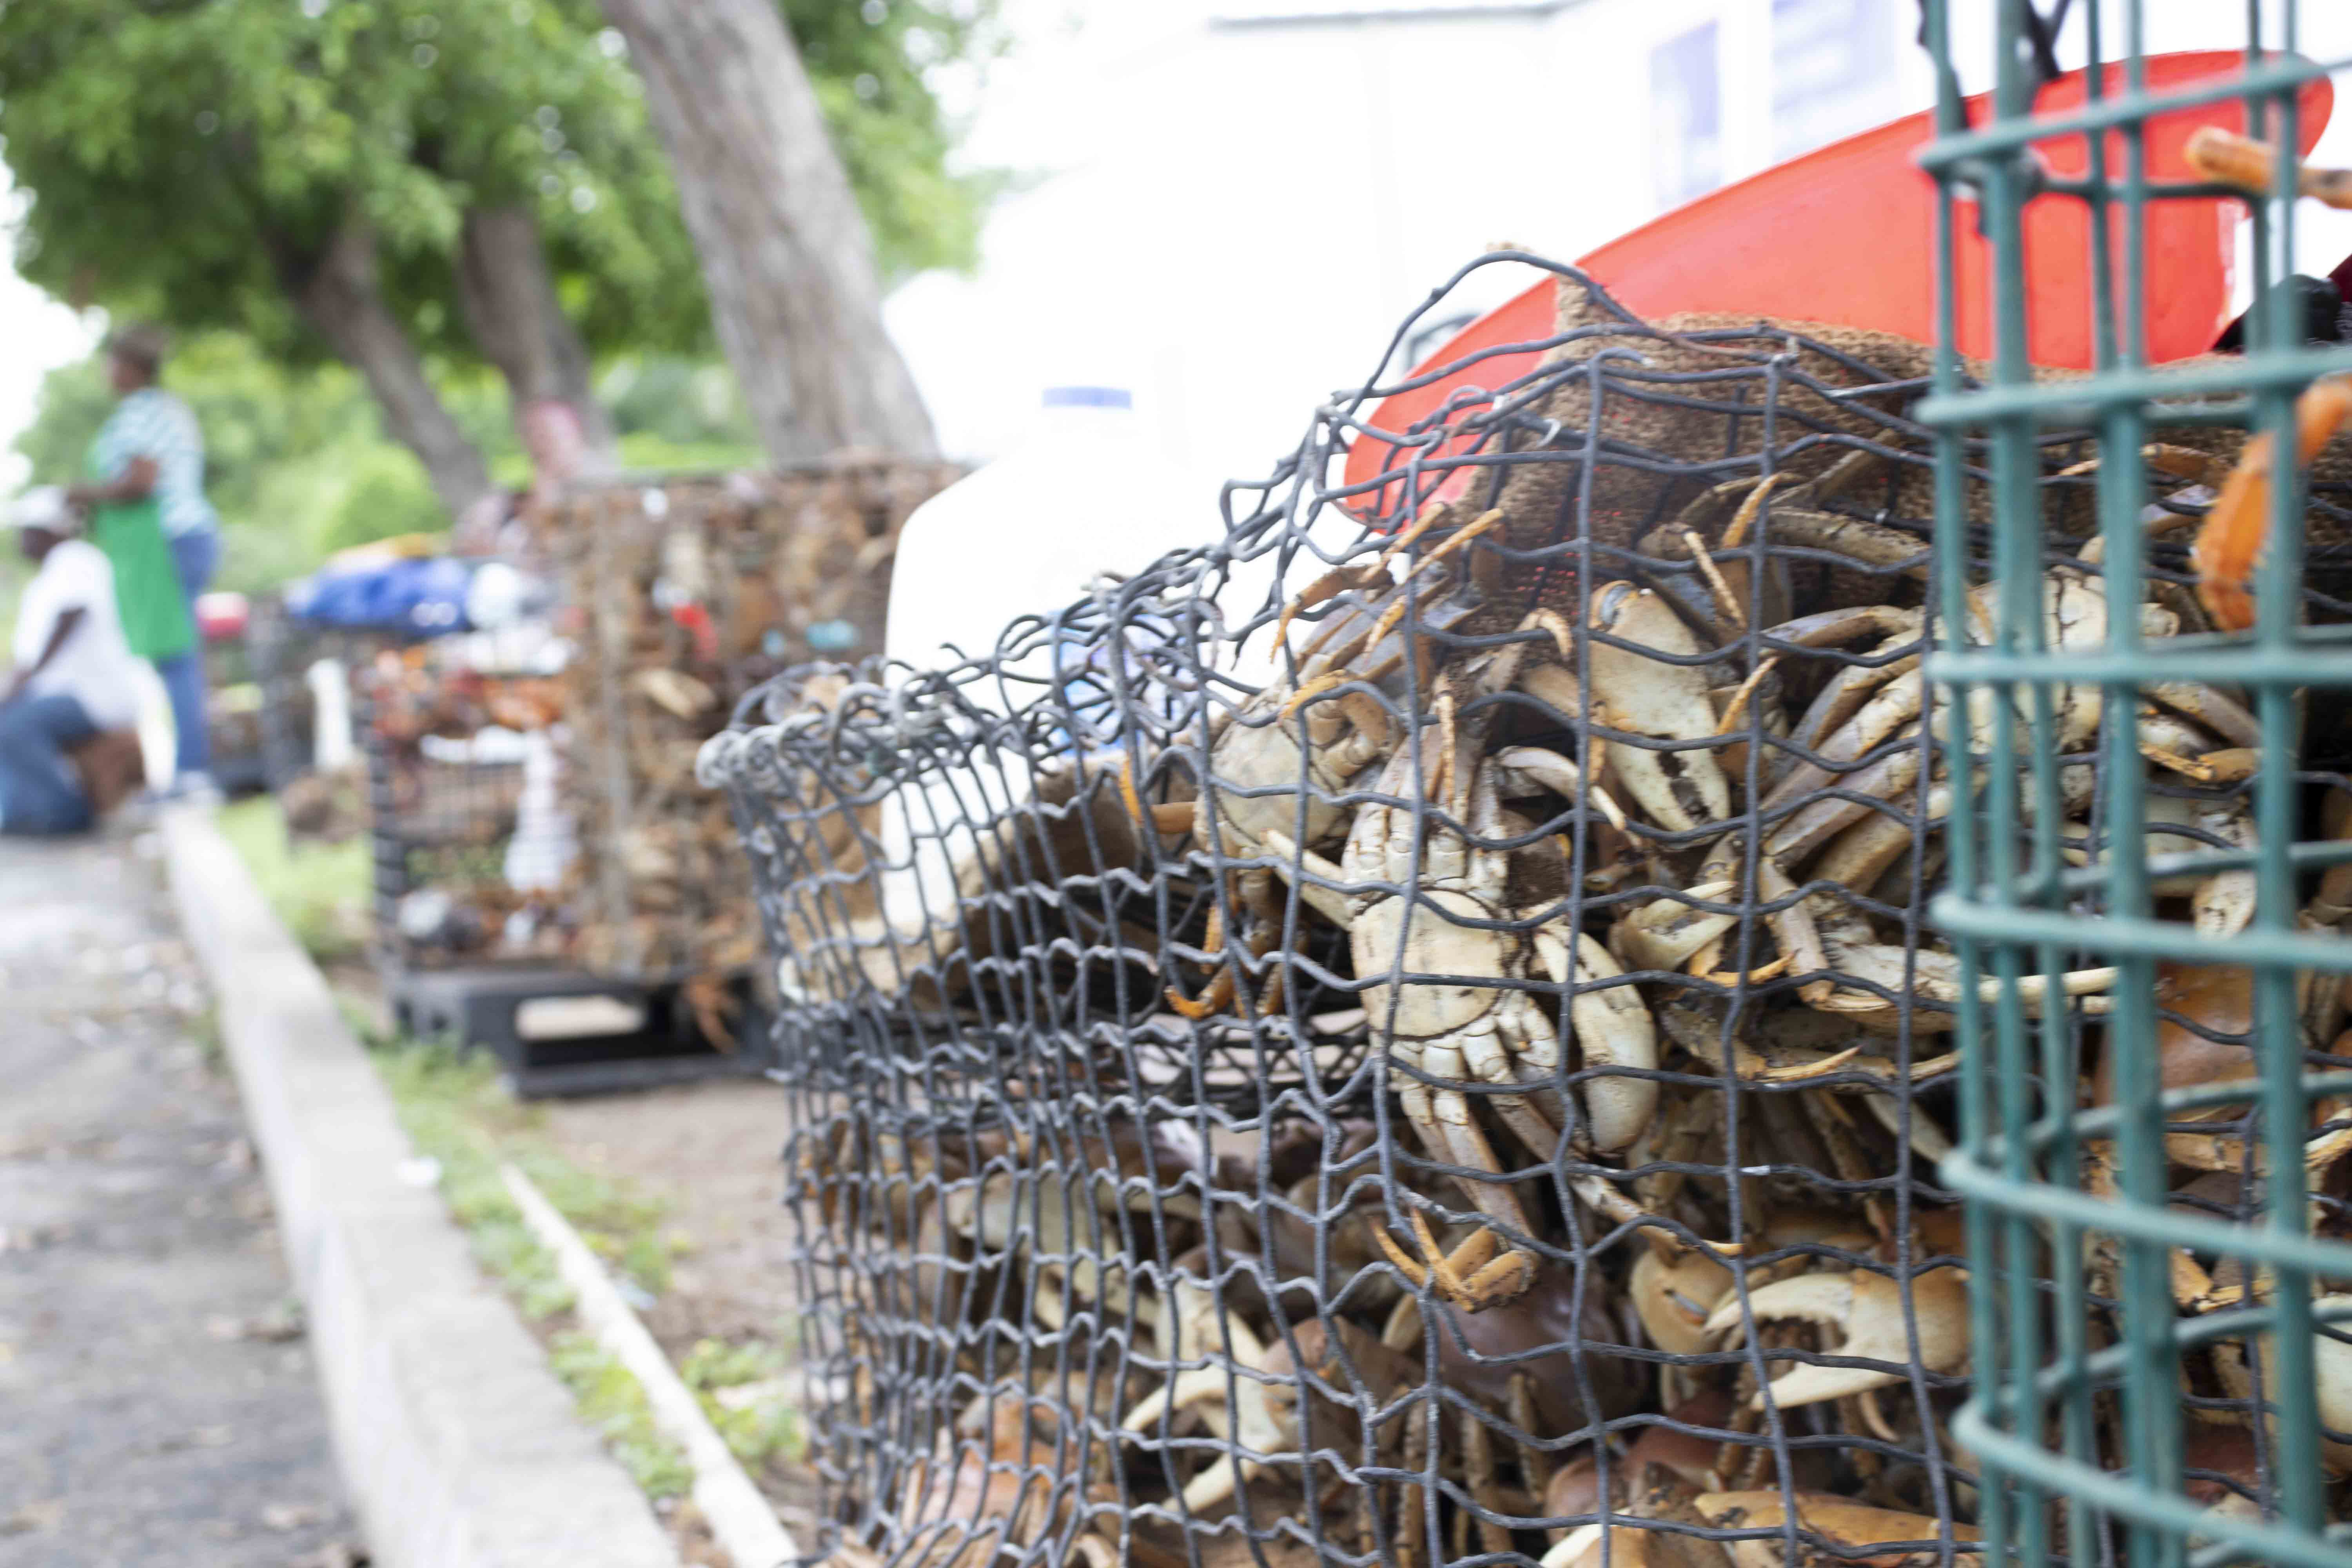 Row of crab crates